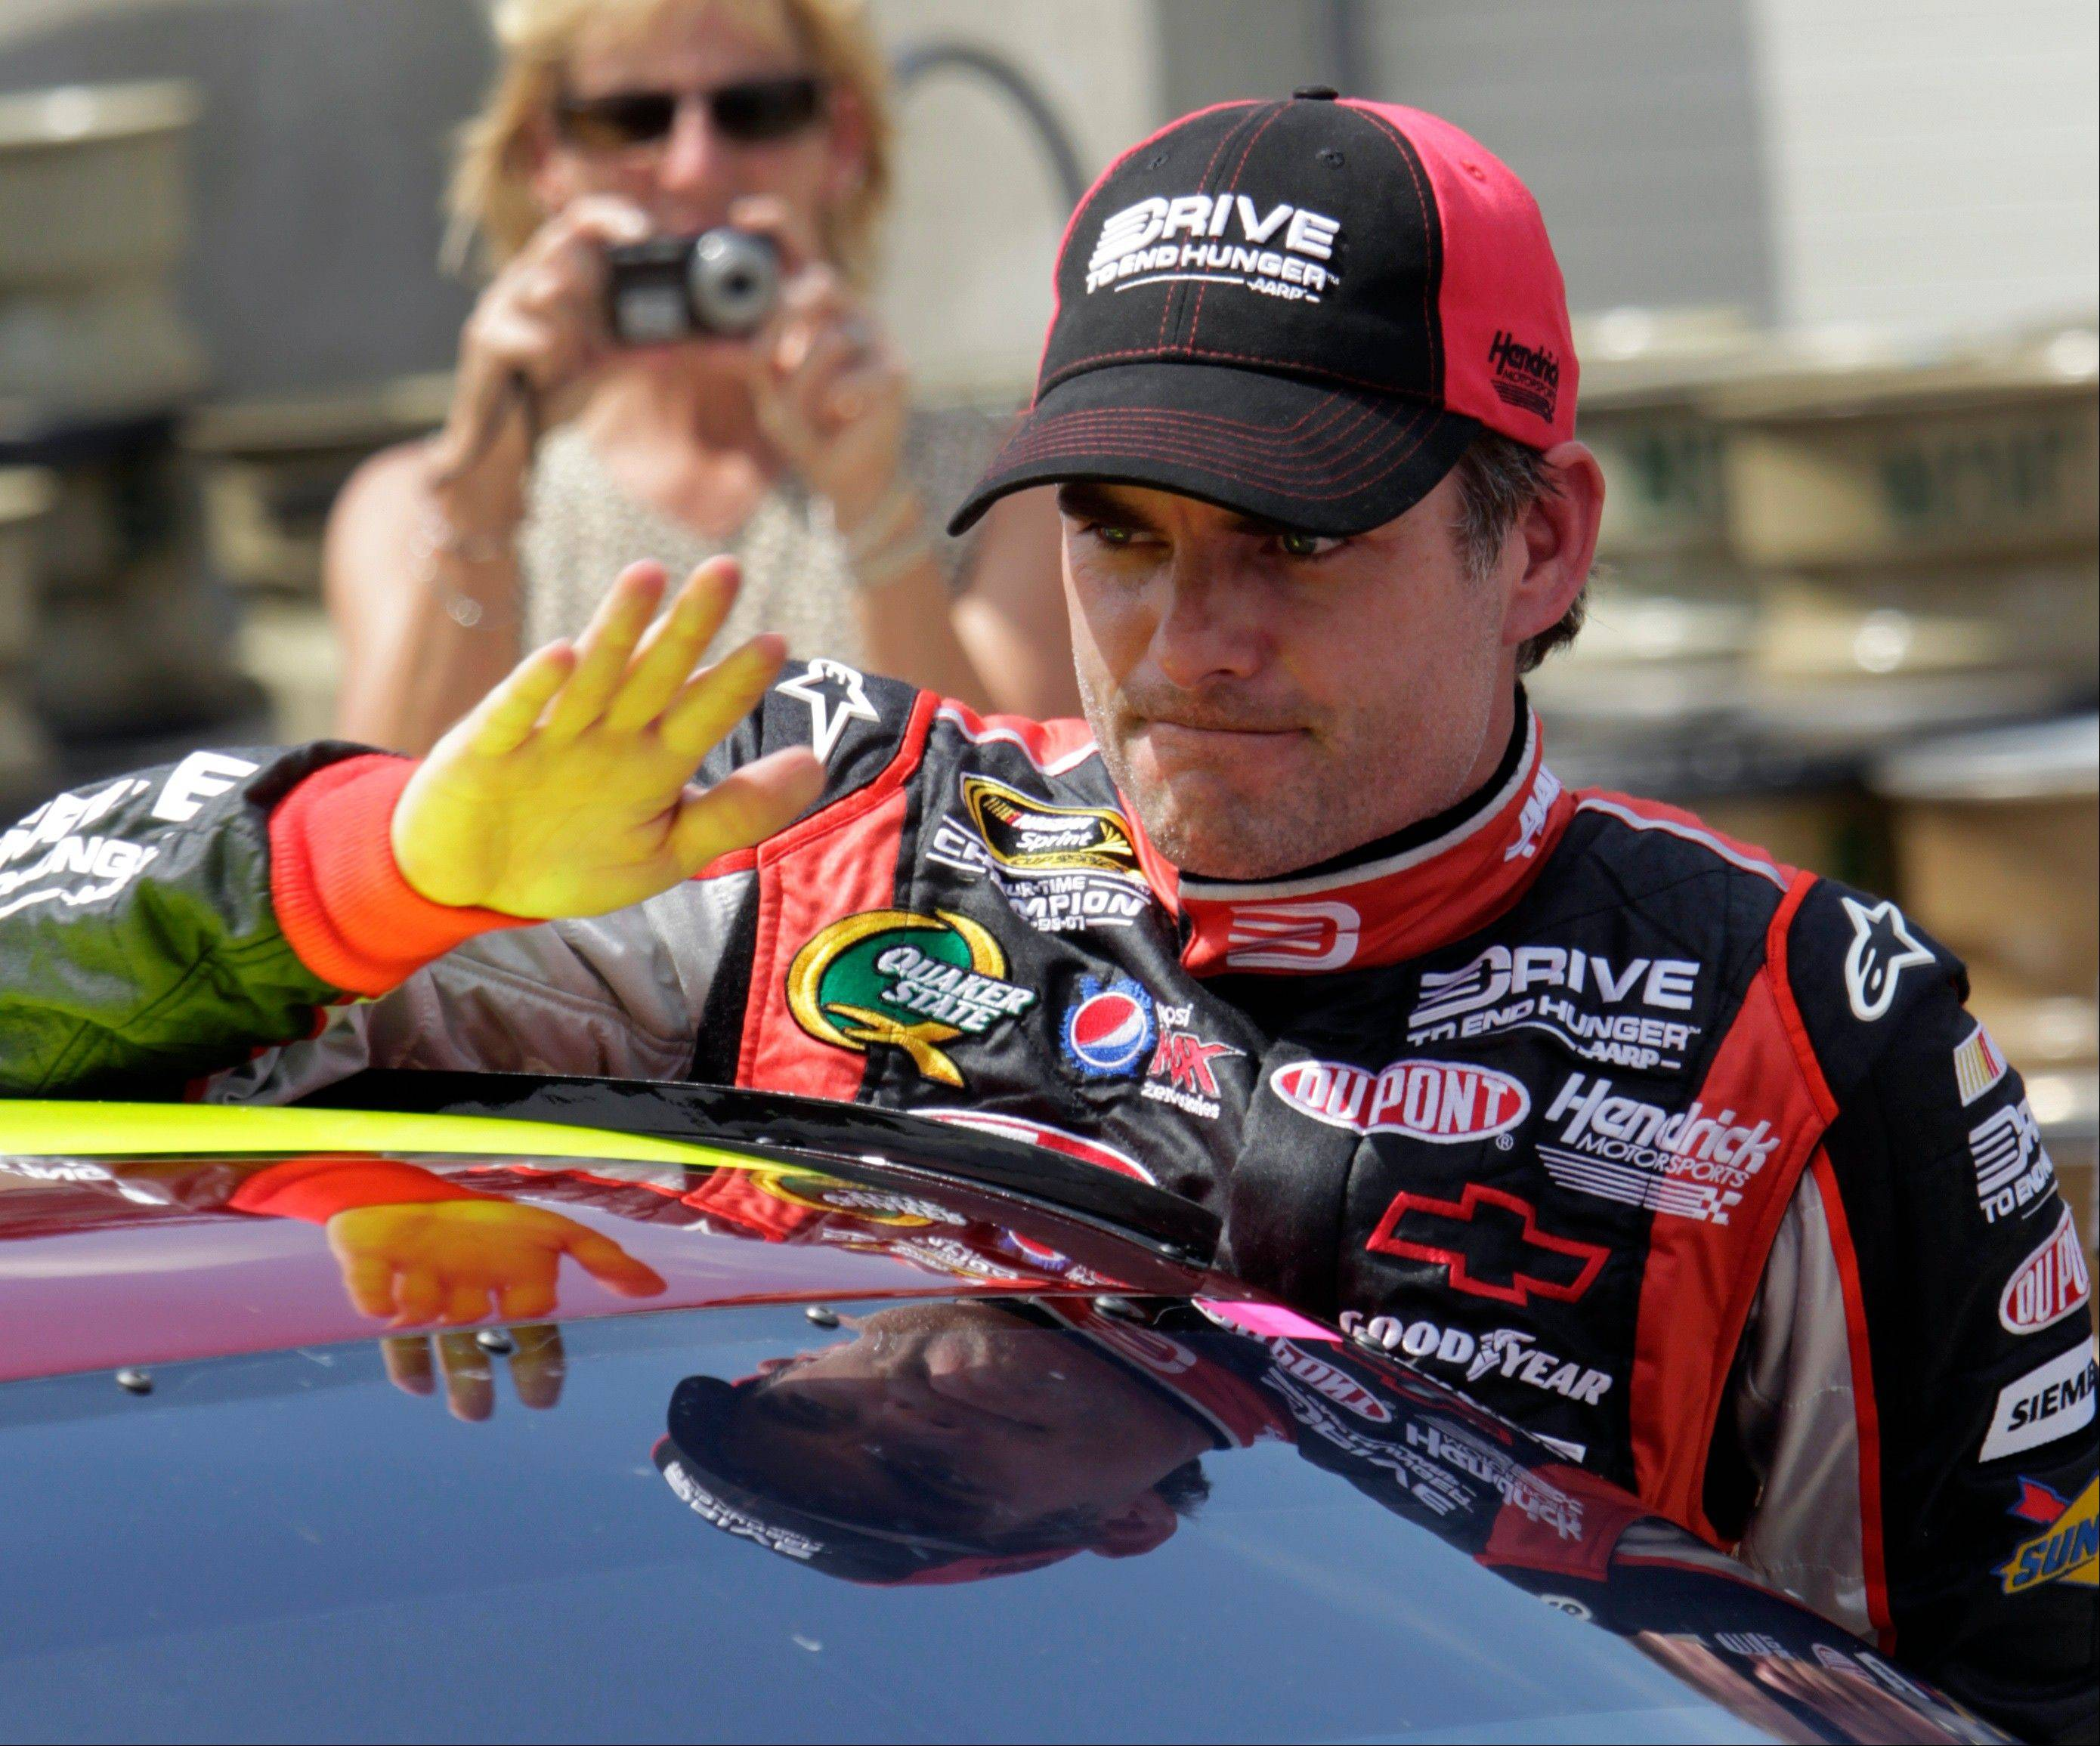 Jeff Gordon climbs out of his car Saturday after he qualified for the NASCAR Brickyard 400 auto race at the Indianapolis Motor Speedway in Indianapolis.